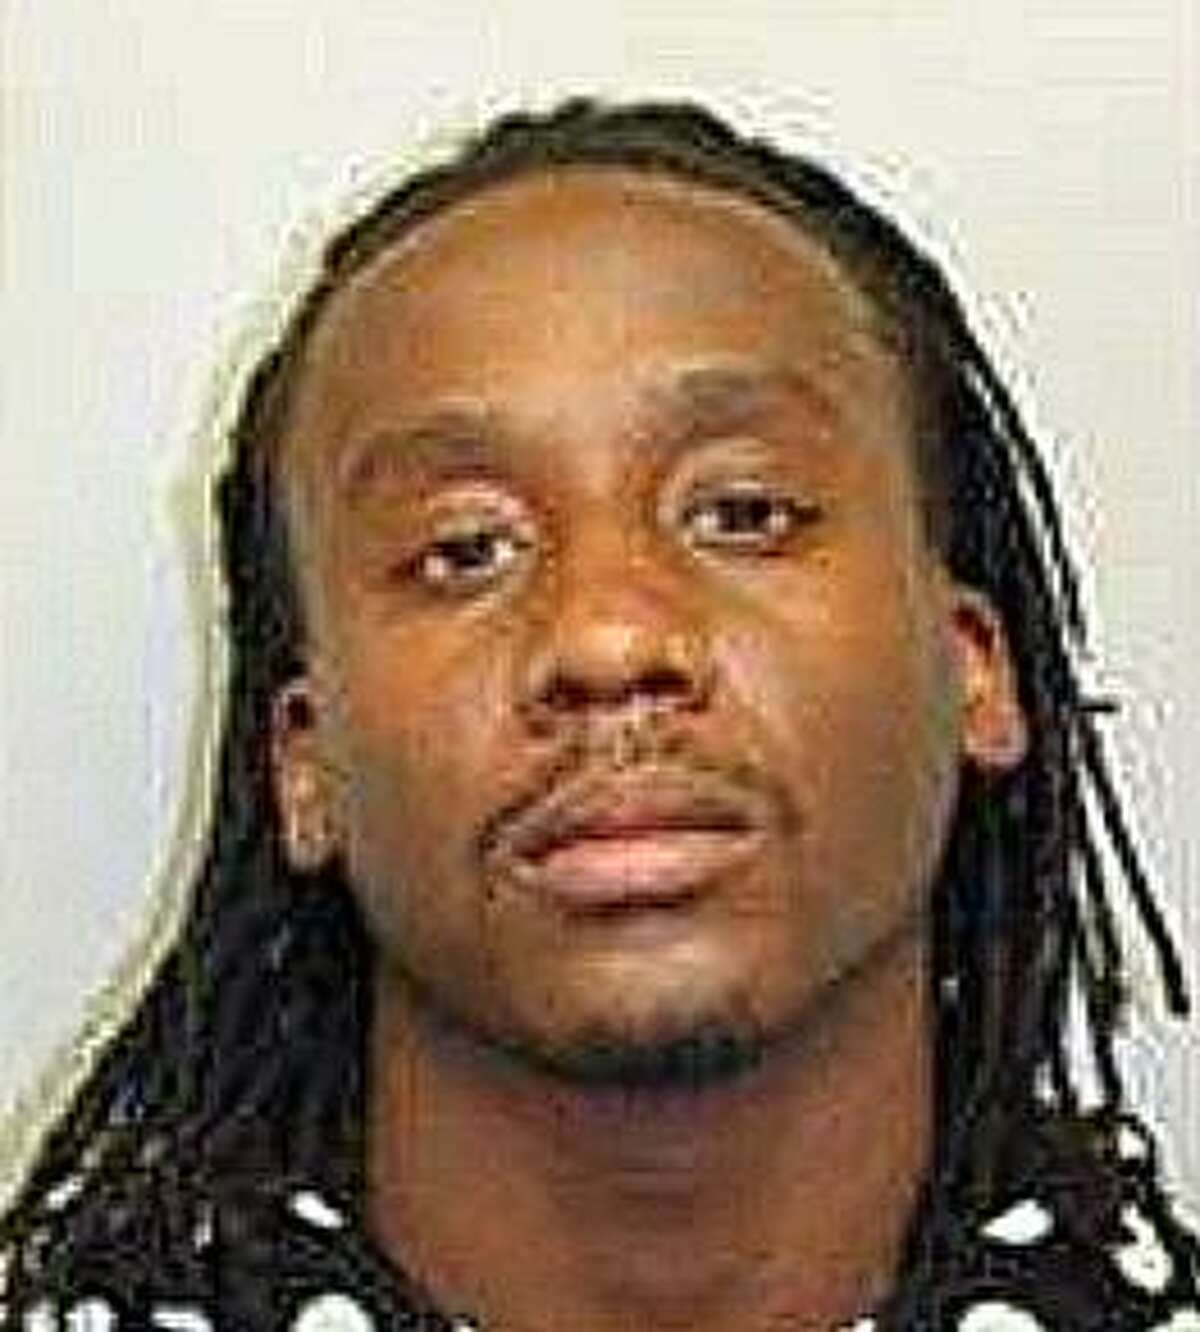 A driver, who was stopped for misuse of license plates by Newington officers on Tuesday, April 30, 2019 turned out to be wanted for a shooting in Stratford. Kenneth Darryl Jones, 22, of Newington, was turned over to Stratford police after Newington officers learned he had an arrest warrant for first-degree assault. The charge stems from a recent shooting in Stratford.